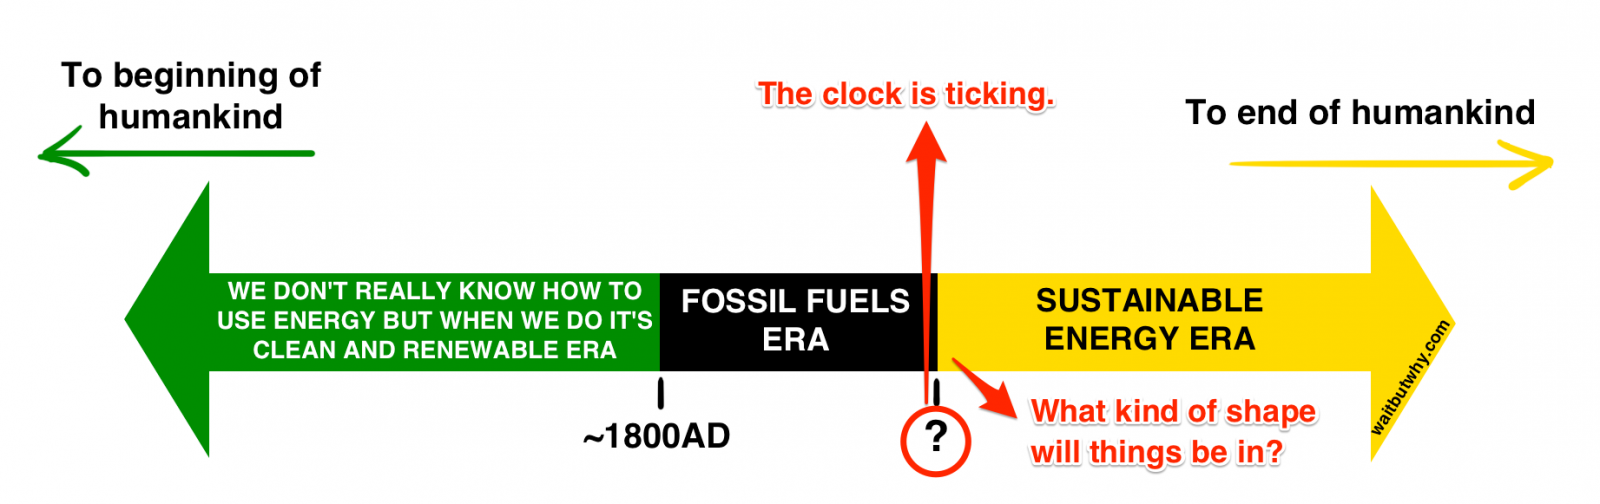 fossil fuels timeline